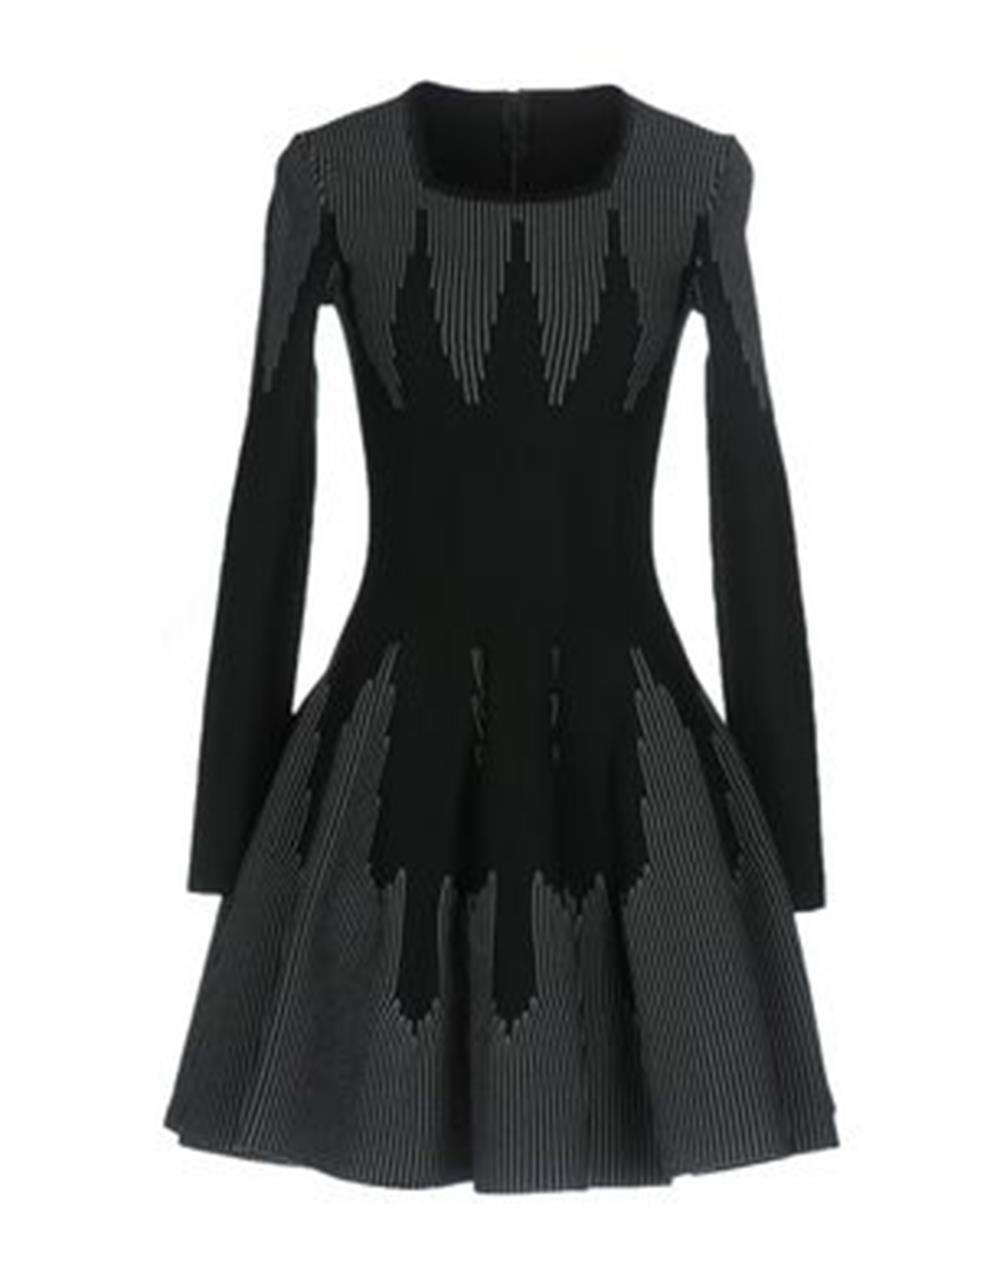 AZZEDINE ALAÏA STRETCH KNIT WOOL FLARE MINI DRESS FR 42 UK 14